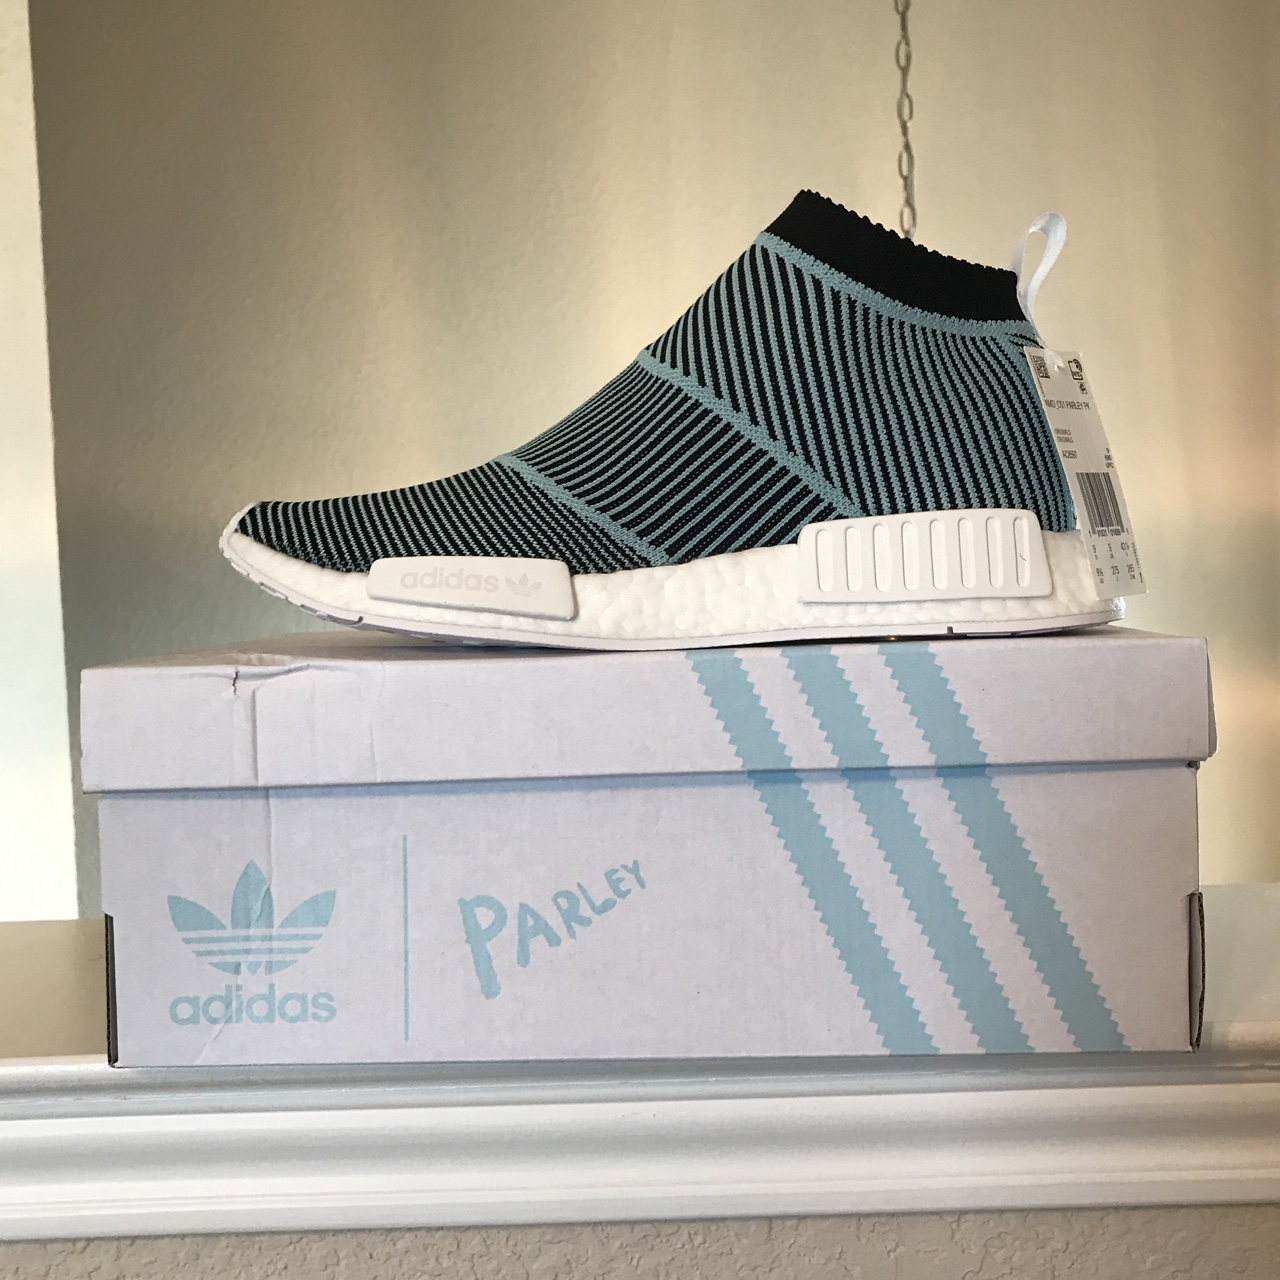 separation shoes 8b642 692ea Brand New NMD_CS1(City Sock) Parley PK. Size 9 1/2 ...